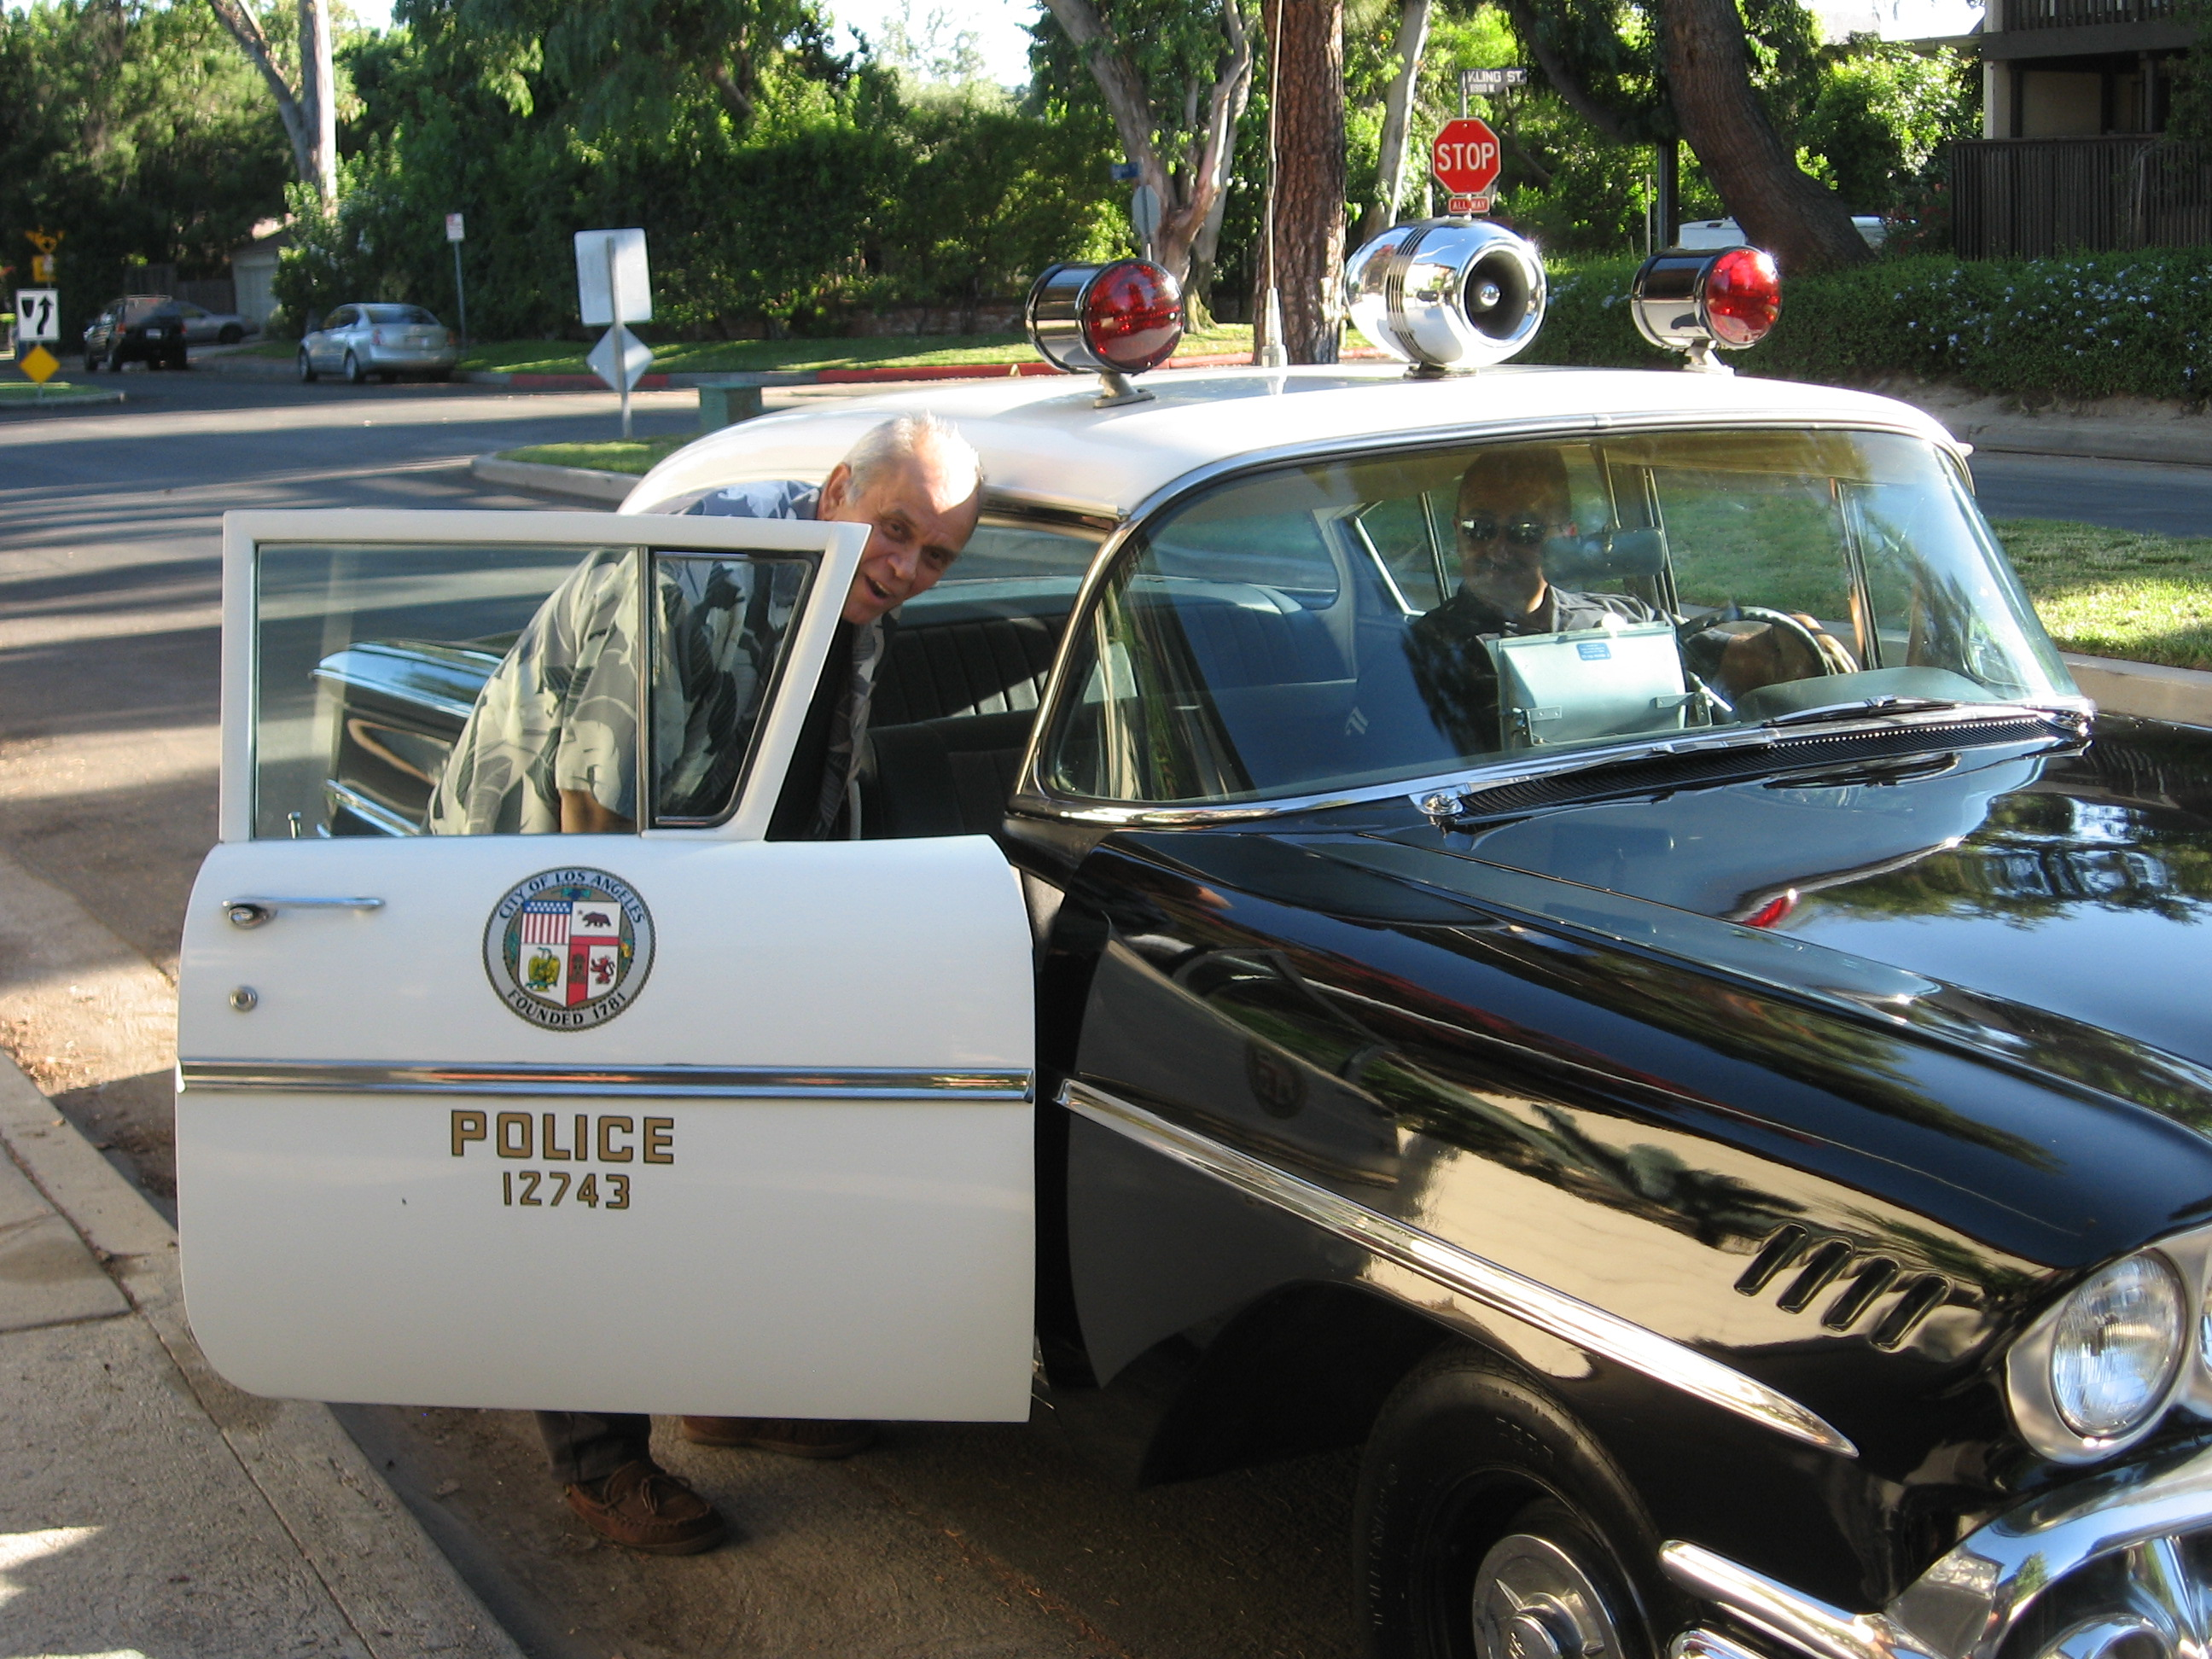 LAPD giving RJ a ride to a local event in their cool 1950's Chevy Police Car.